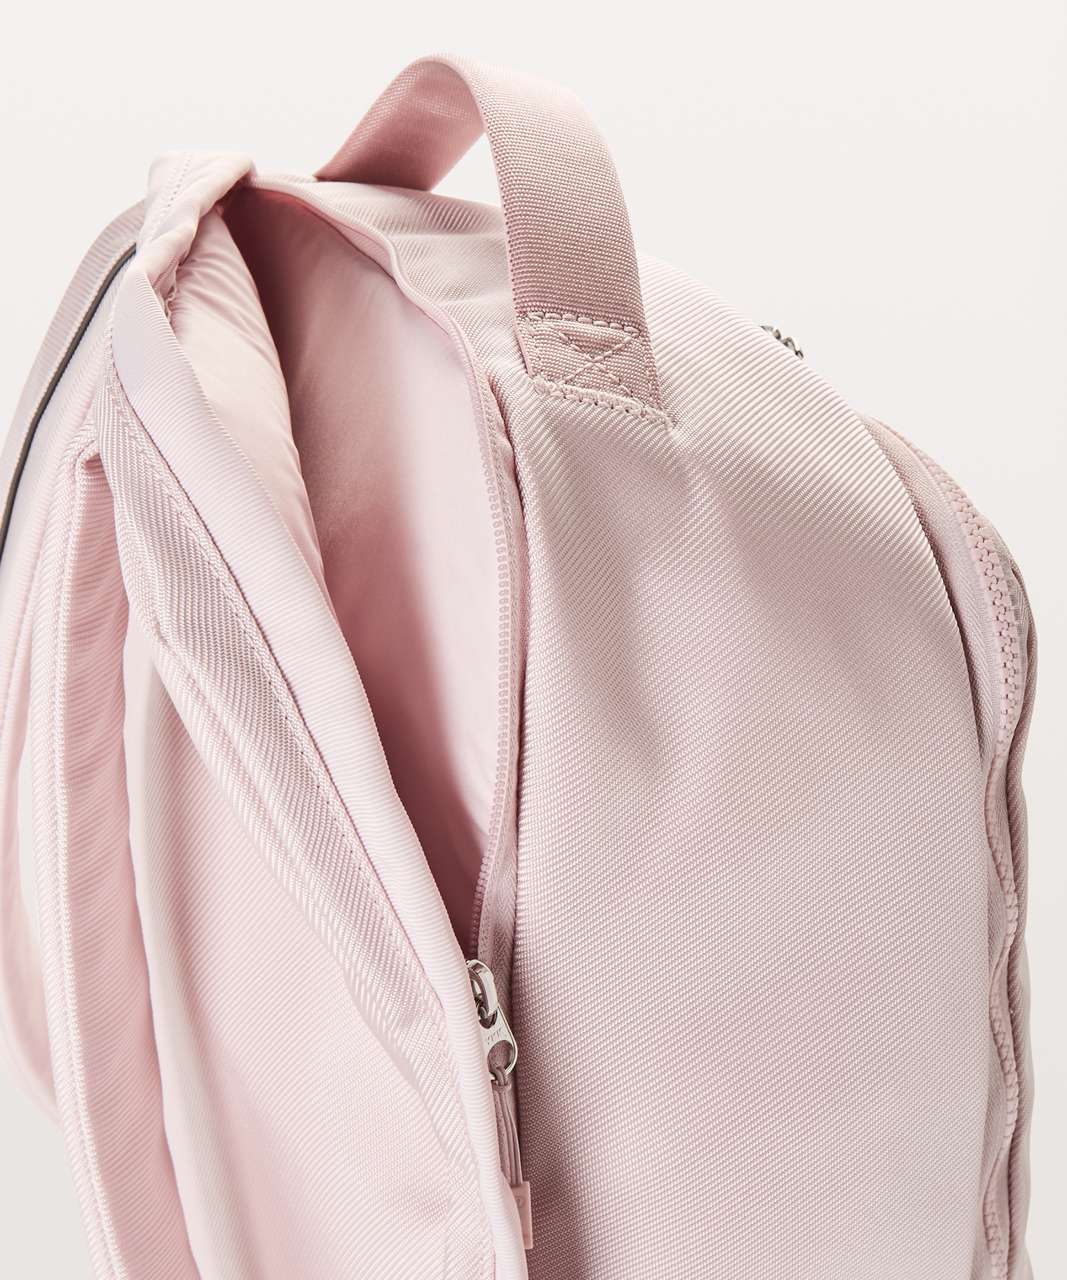 Lululemon City Adventurer Backpack *17L - Misty Pink (First Release)